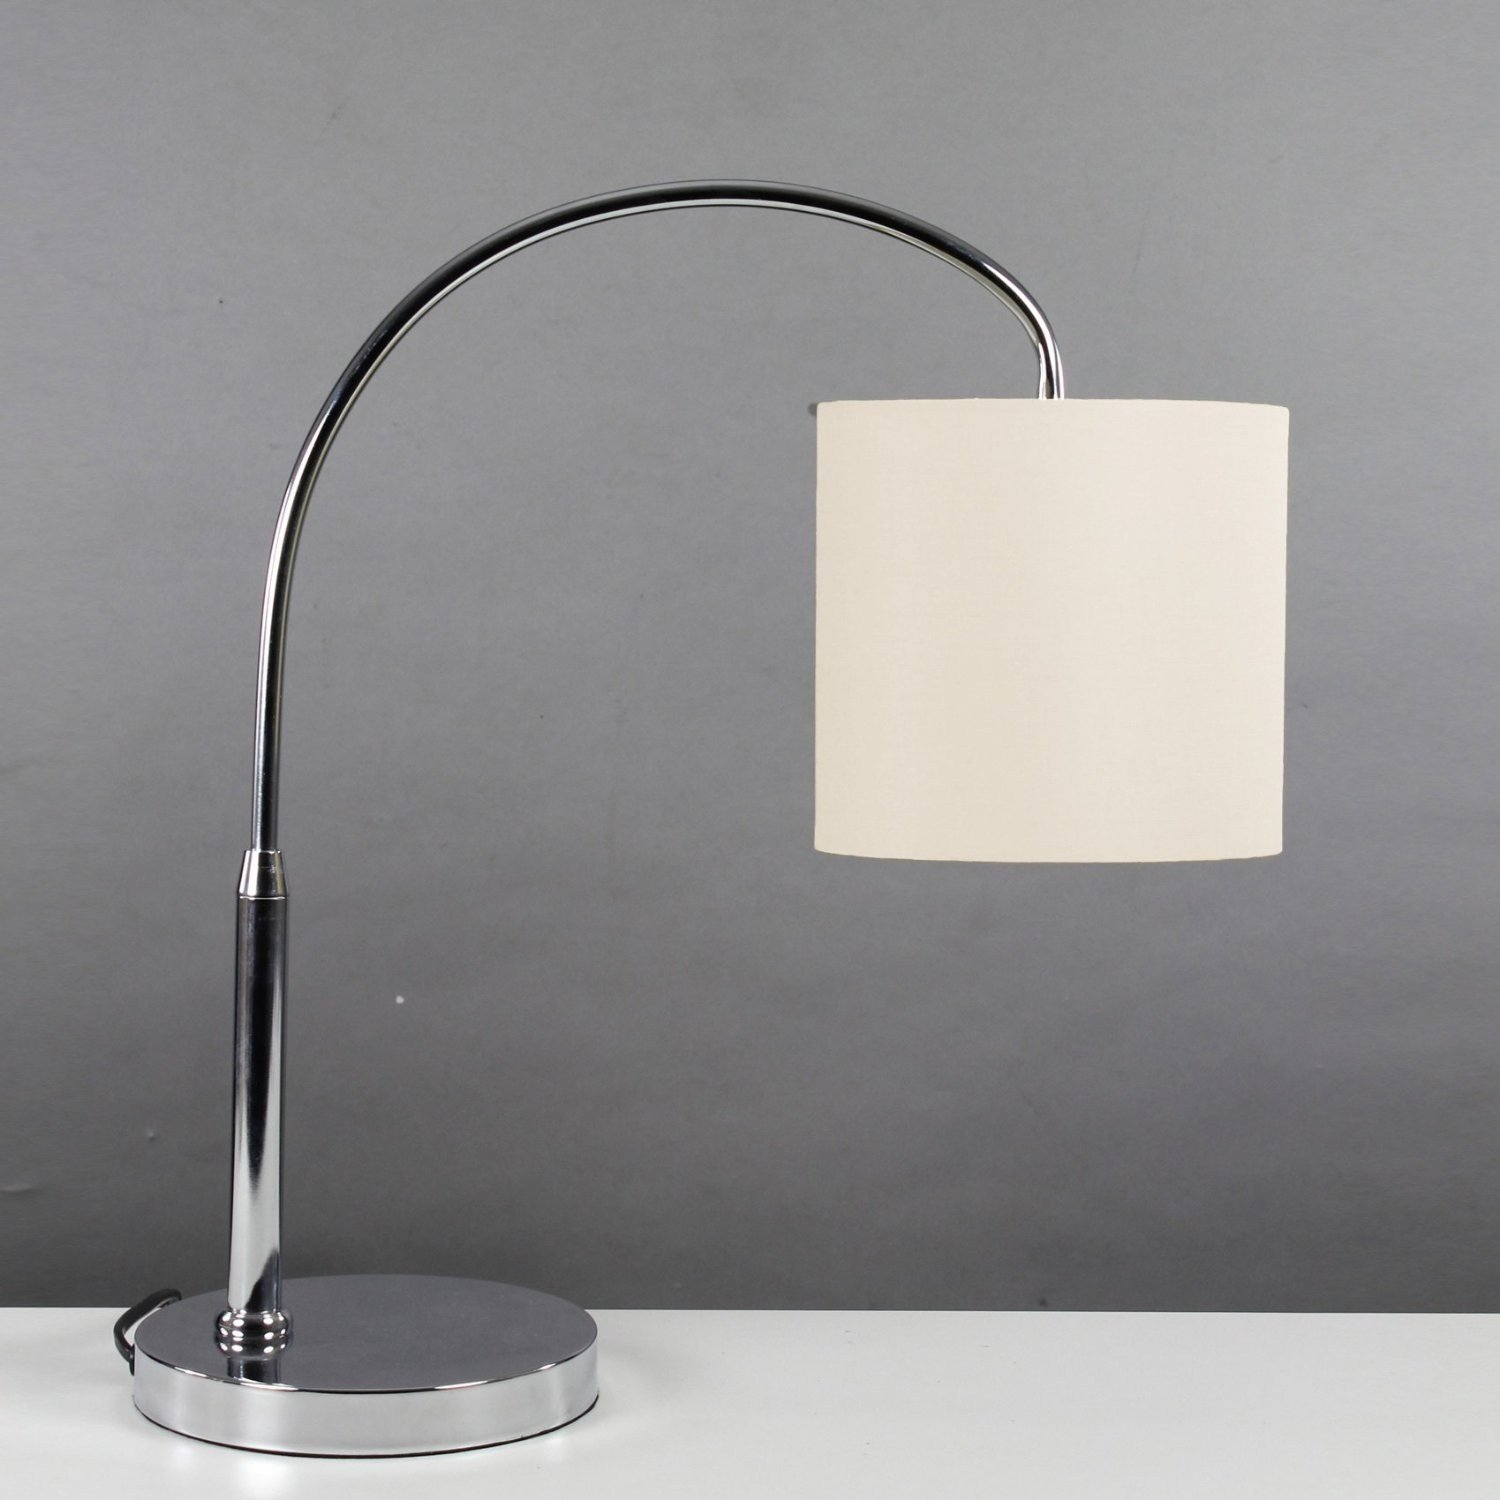 Best Practicality Modern Bedroom Table Lamps — The Home Redesign With Pictures